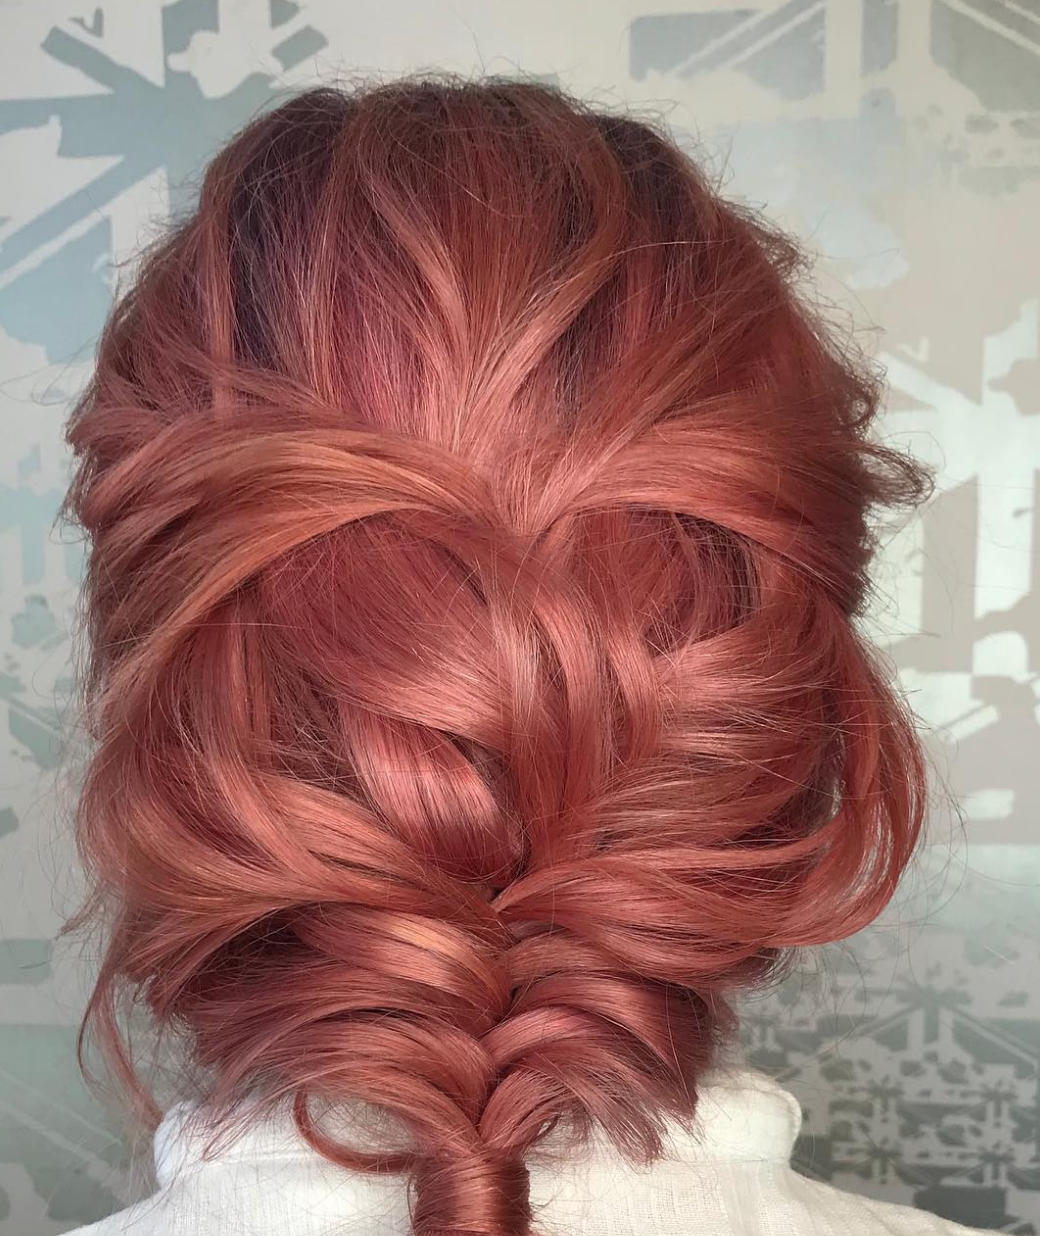 Sadie did this colour today!  On trend as ever …